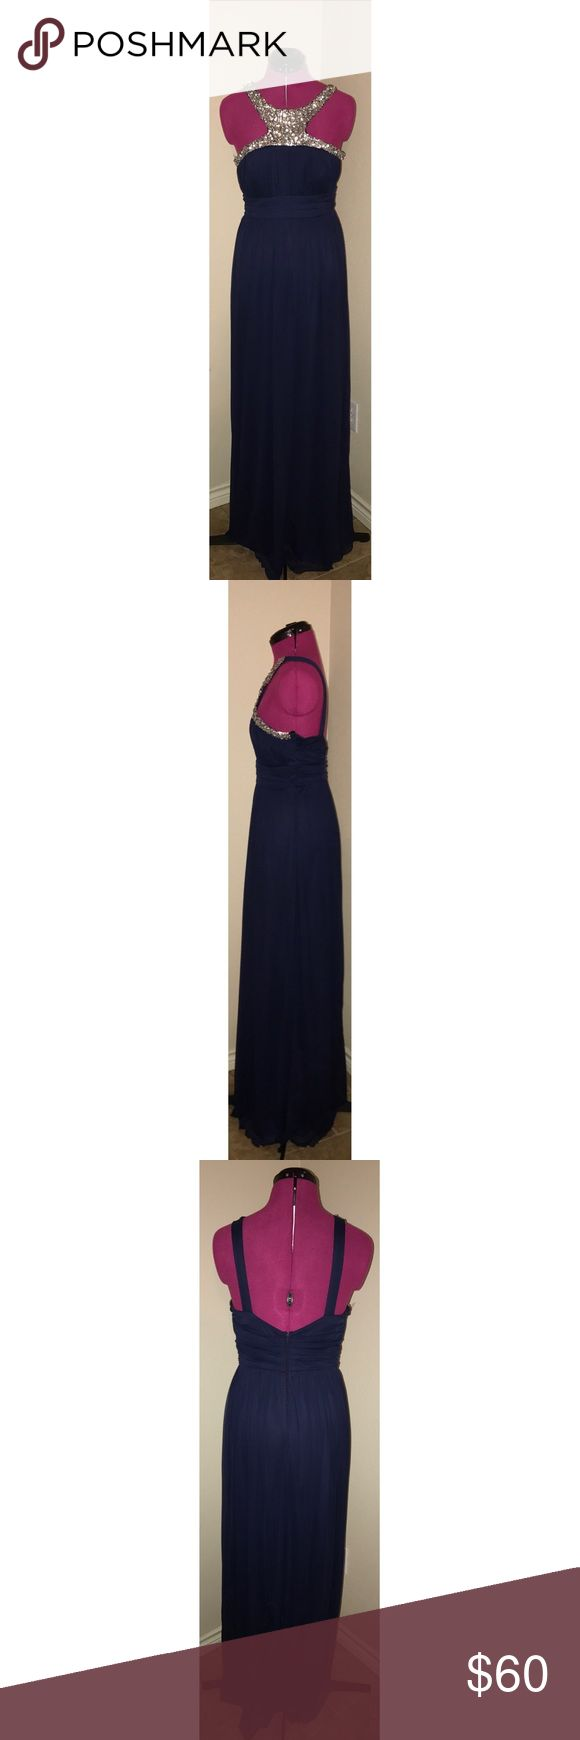 Prom/Formal maxi dress Navy maxi dress. Silver jeweled neckline. Good condition ❗️WORN ONCE❗️ Dresses Prom